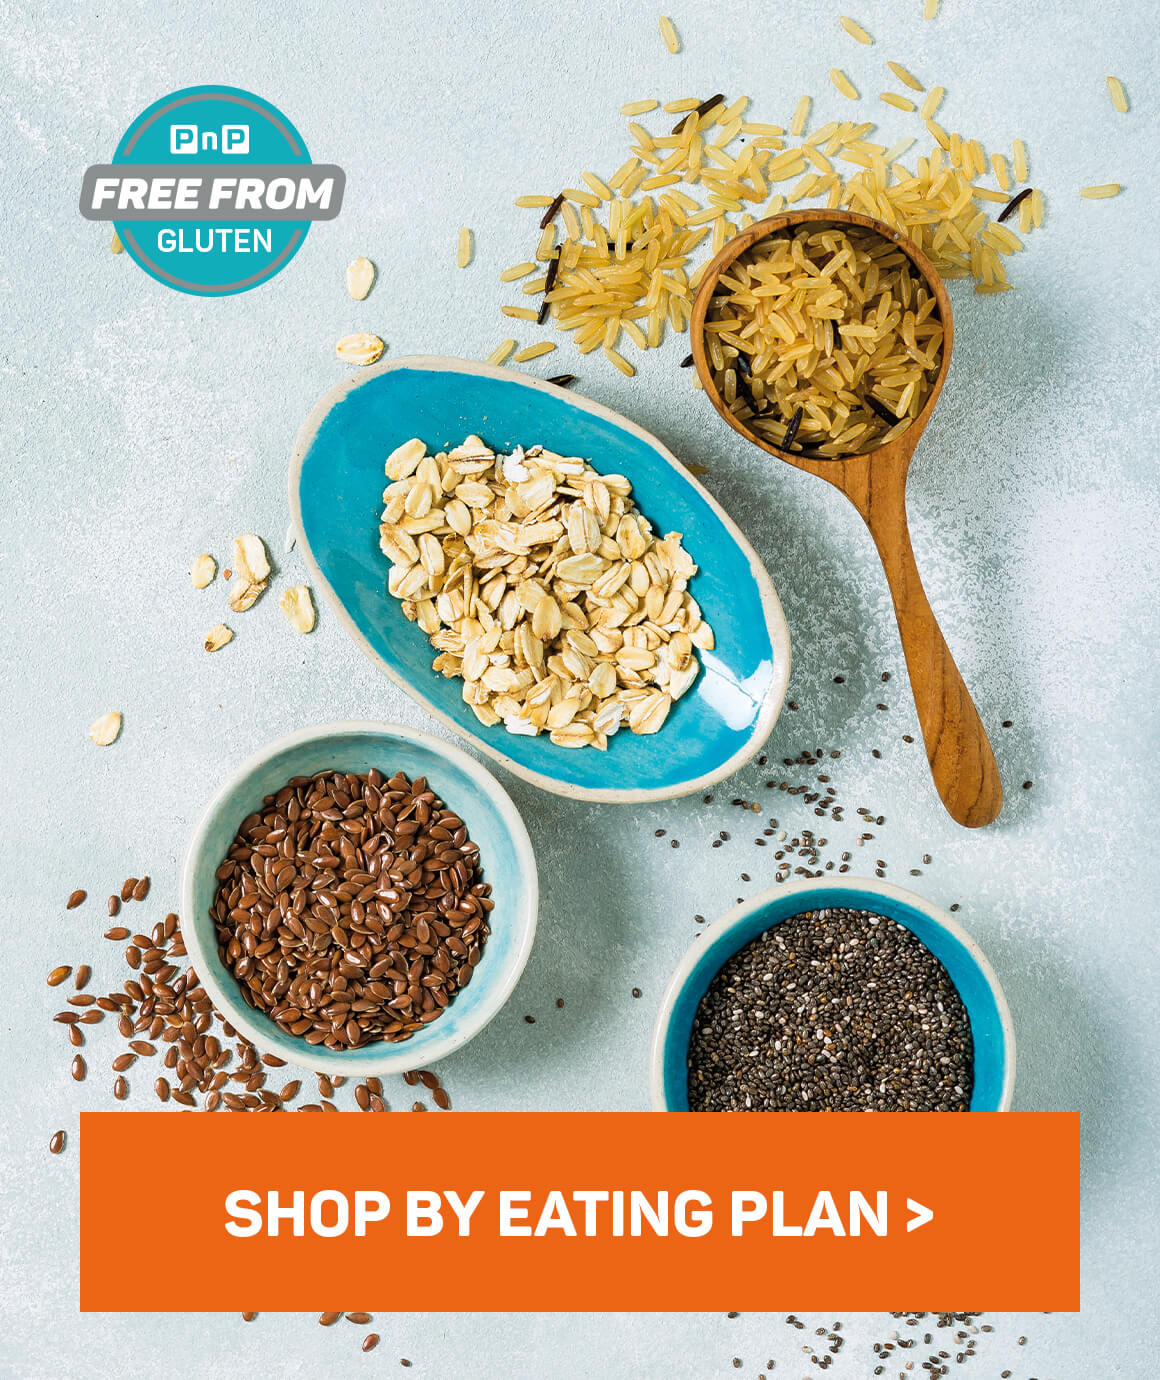 Shop by eating plan